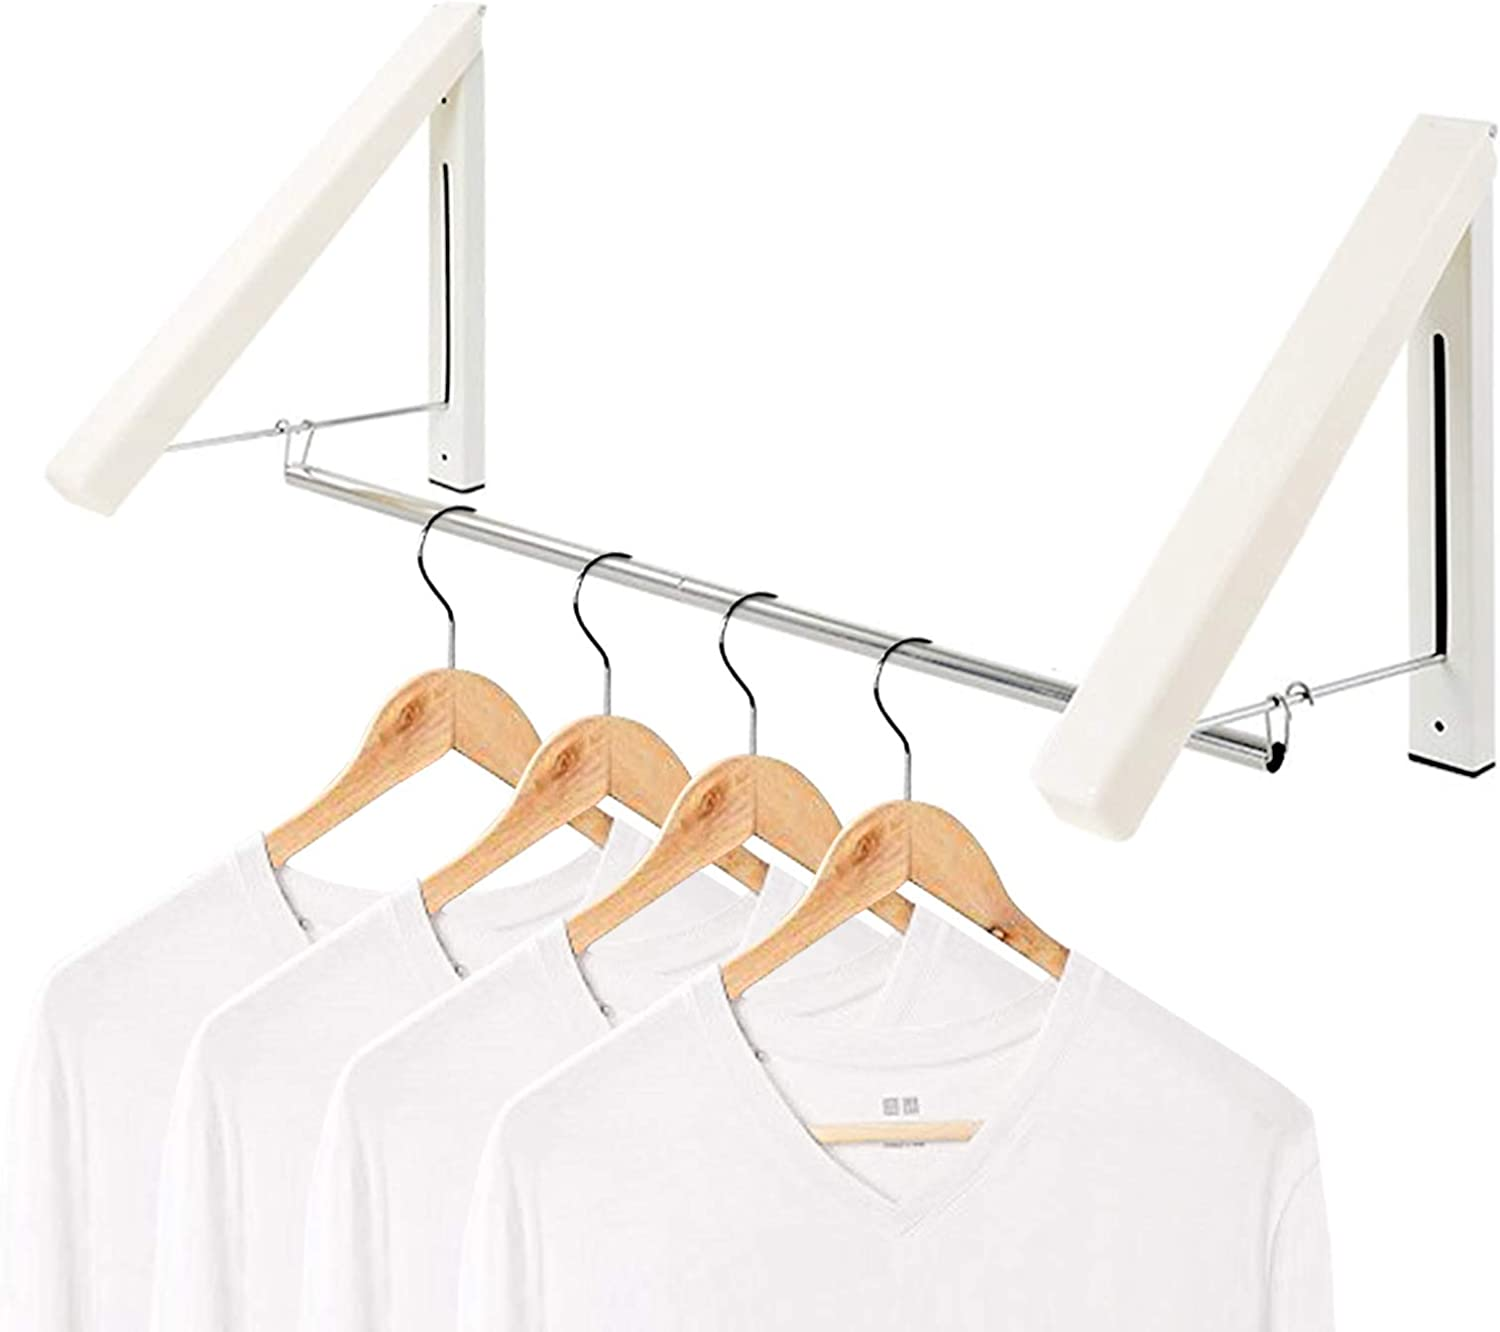 LANRCYO Indoor Outdoor Wall Mounted Folding Shipping included New color Rack- Clothes Drying